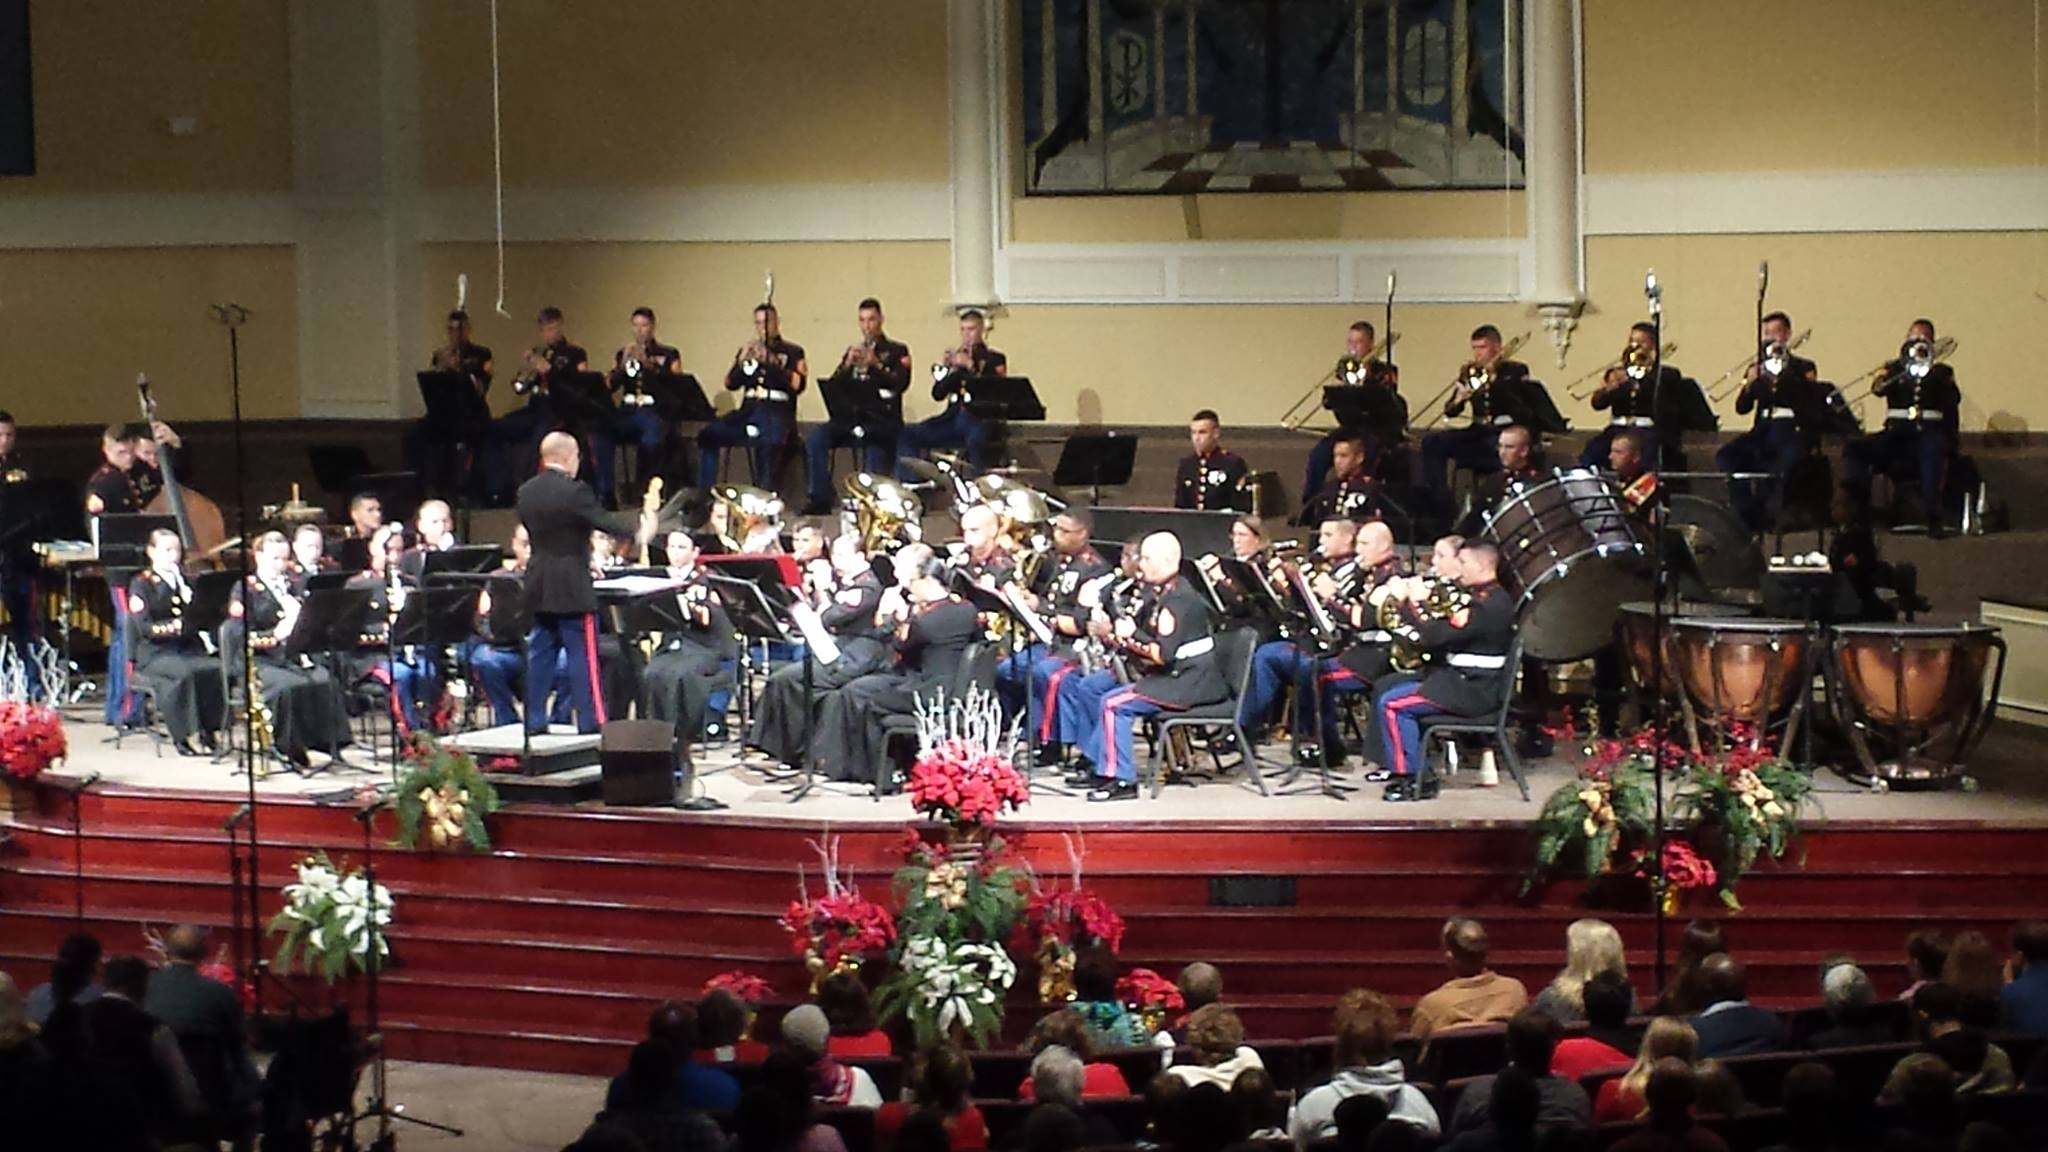 Catch the Parris Island Marine Band in the 8th Annual Lowcountry Christmas Concert on Sunday, December 18th at 7pm. Photo courtesy Layla Manning